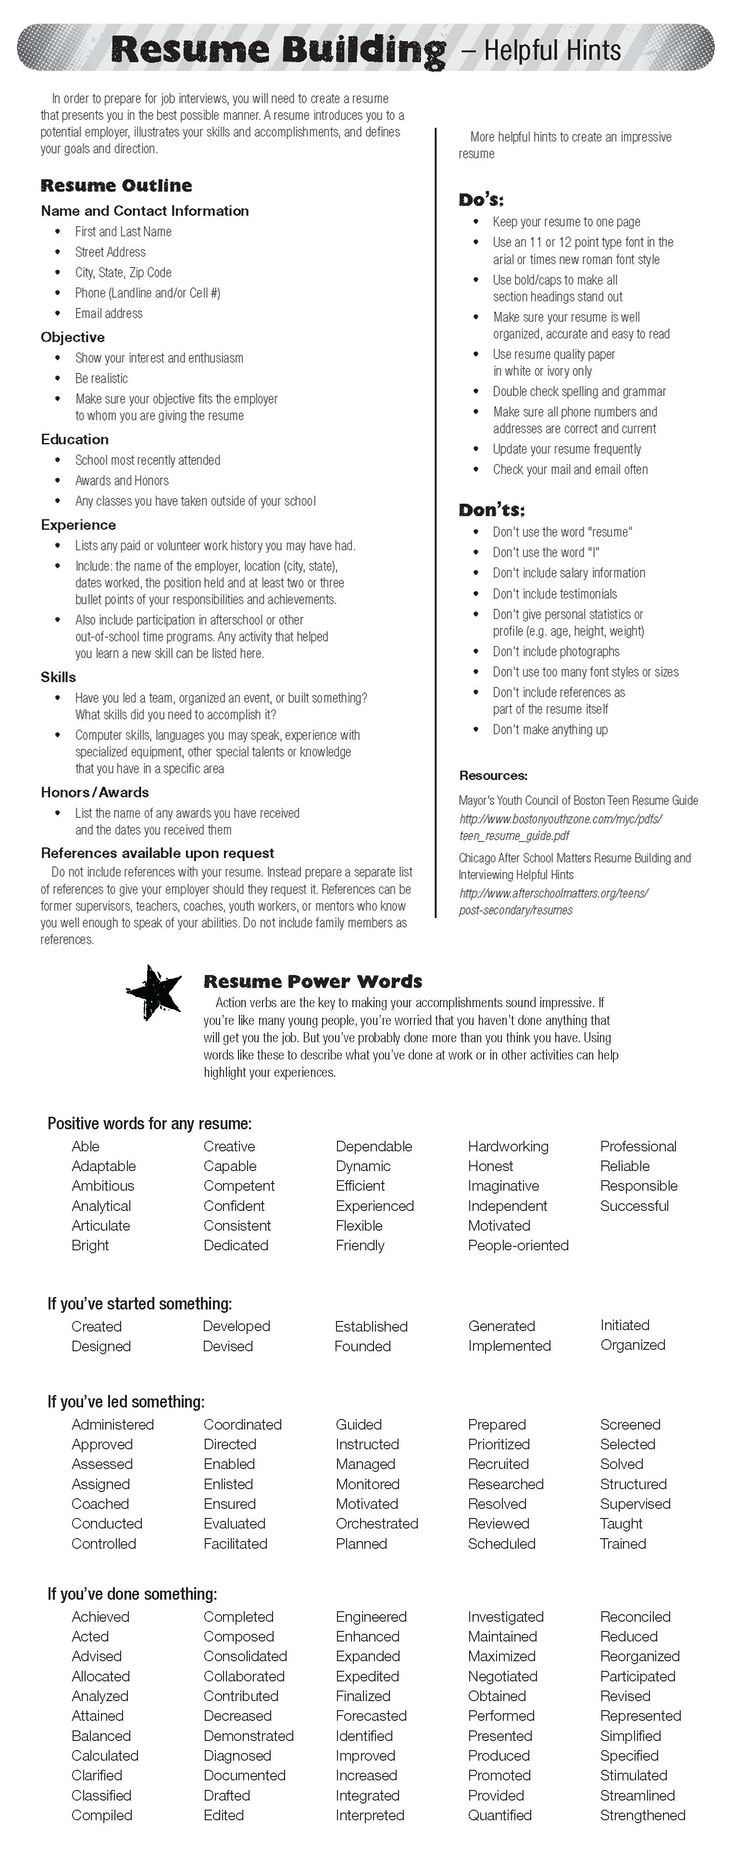 Opposenewapstandardsus  Marvelous  Ideas About Resume On Pinterest  Cv Format Resume Cv And  With Inspiring  Ideas About Resume On Pinterest  Cv Format Resume Cv And Resume Templates With Nice Best Resume Program Also Resume For Cna Position In Addition How To Make A Nursing Resume And Cna Objective Resume Examples As Well As Resume Project Additionally Accounting Specialist Resume From Pinterestcom With Opposenewapstandardsus  Inspiring  Ideas About Resume On Pinterest  Cv Format Resume Cv And  With Nice  Ideas About Resume On Pinterest  Cv Format Resume Cv And Resume Templates And Marvelous Best Resume Program Also Resume For Cna Position In Addition How To Make A Nursing Resume From Pinterestcom